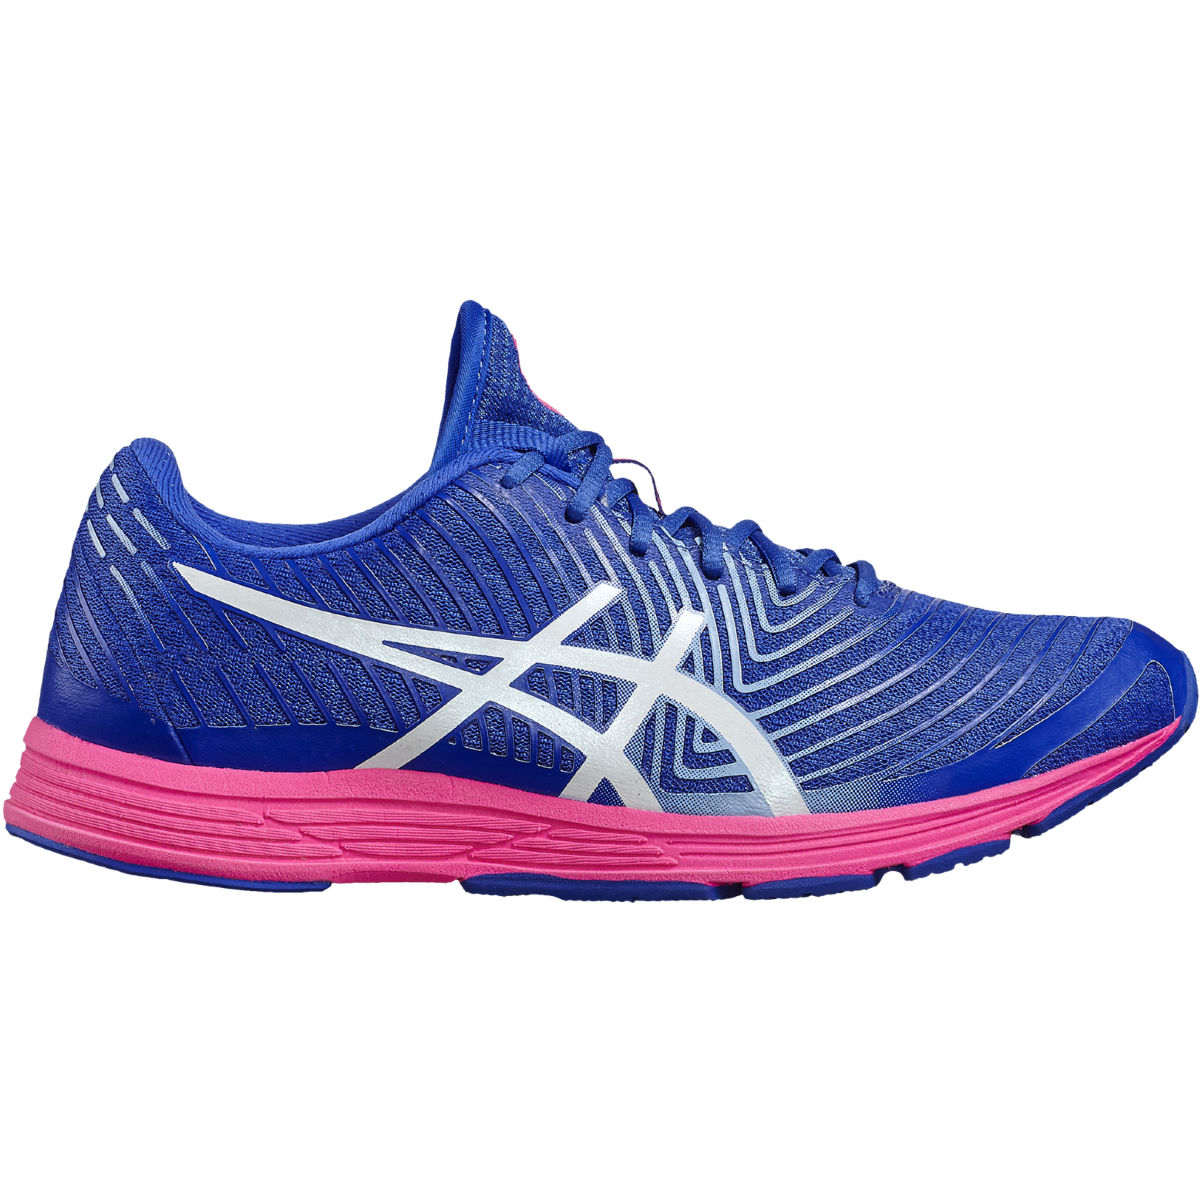 Chaussures Femme Asics Gel-Hyper Tri 3 - UK 5 Blue Purple/White/Ho